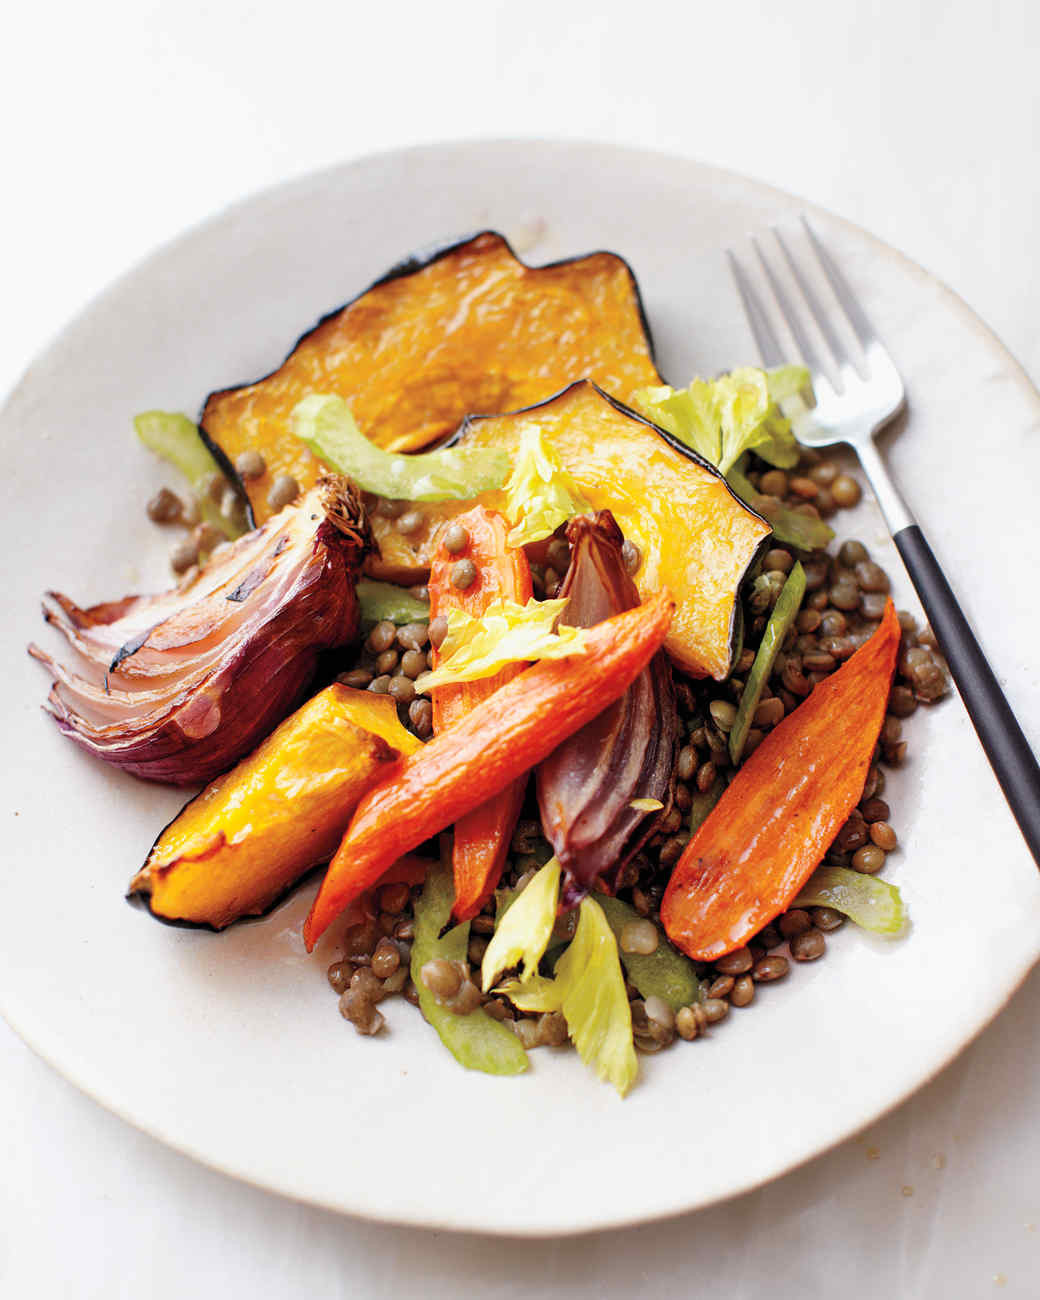 Vegetarian Fall Recipes  Roast Ve able Salad Recipes For Year Round Eating